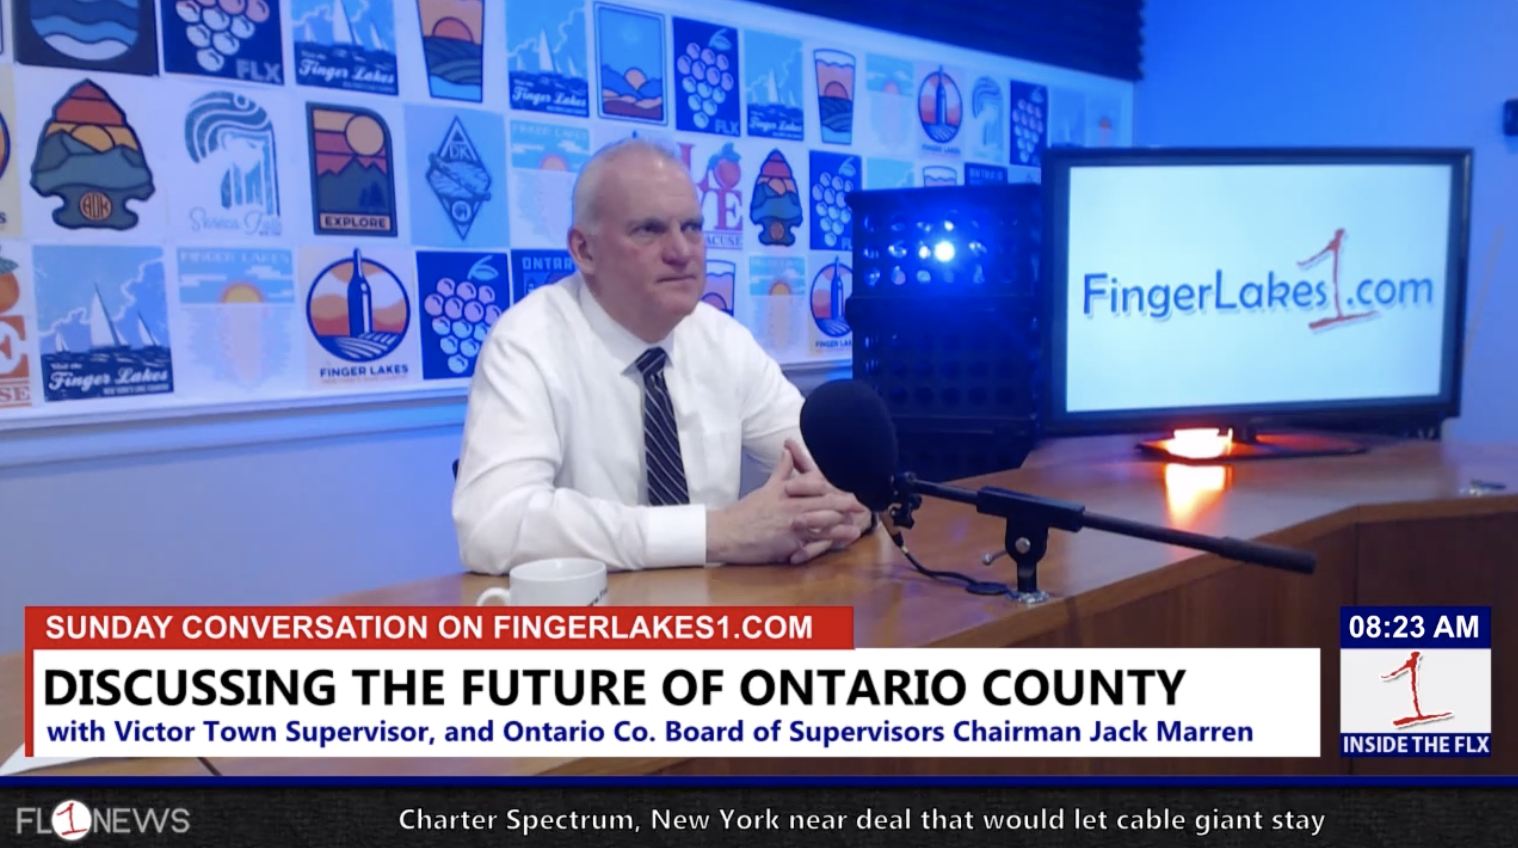 Discussing the future direction of Ontario County with Board Chairman Jack Marren .::. Sunday Conversation 2/10/19